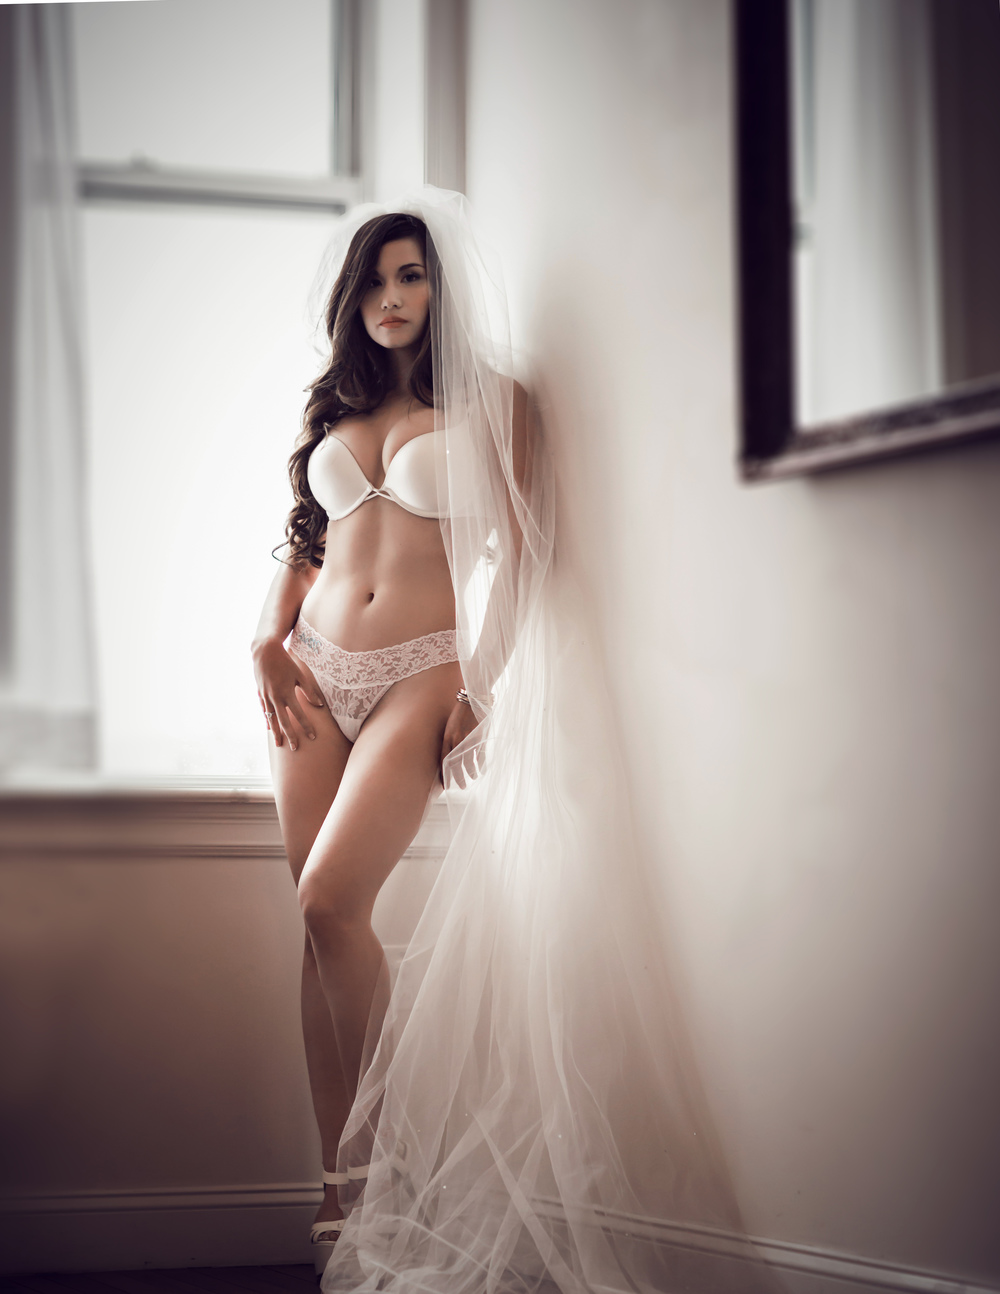 BOUDOIR-NYC-RED BANK-NJ-BRIDE-BRUNETTE-VEIL